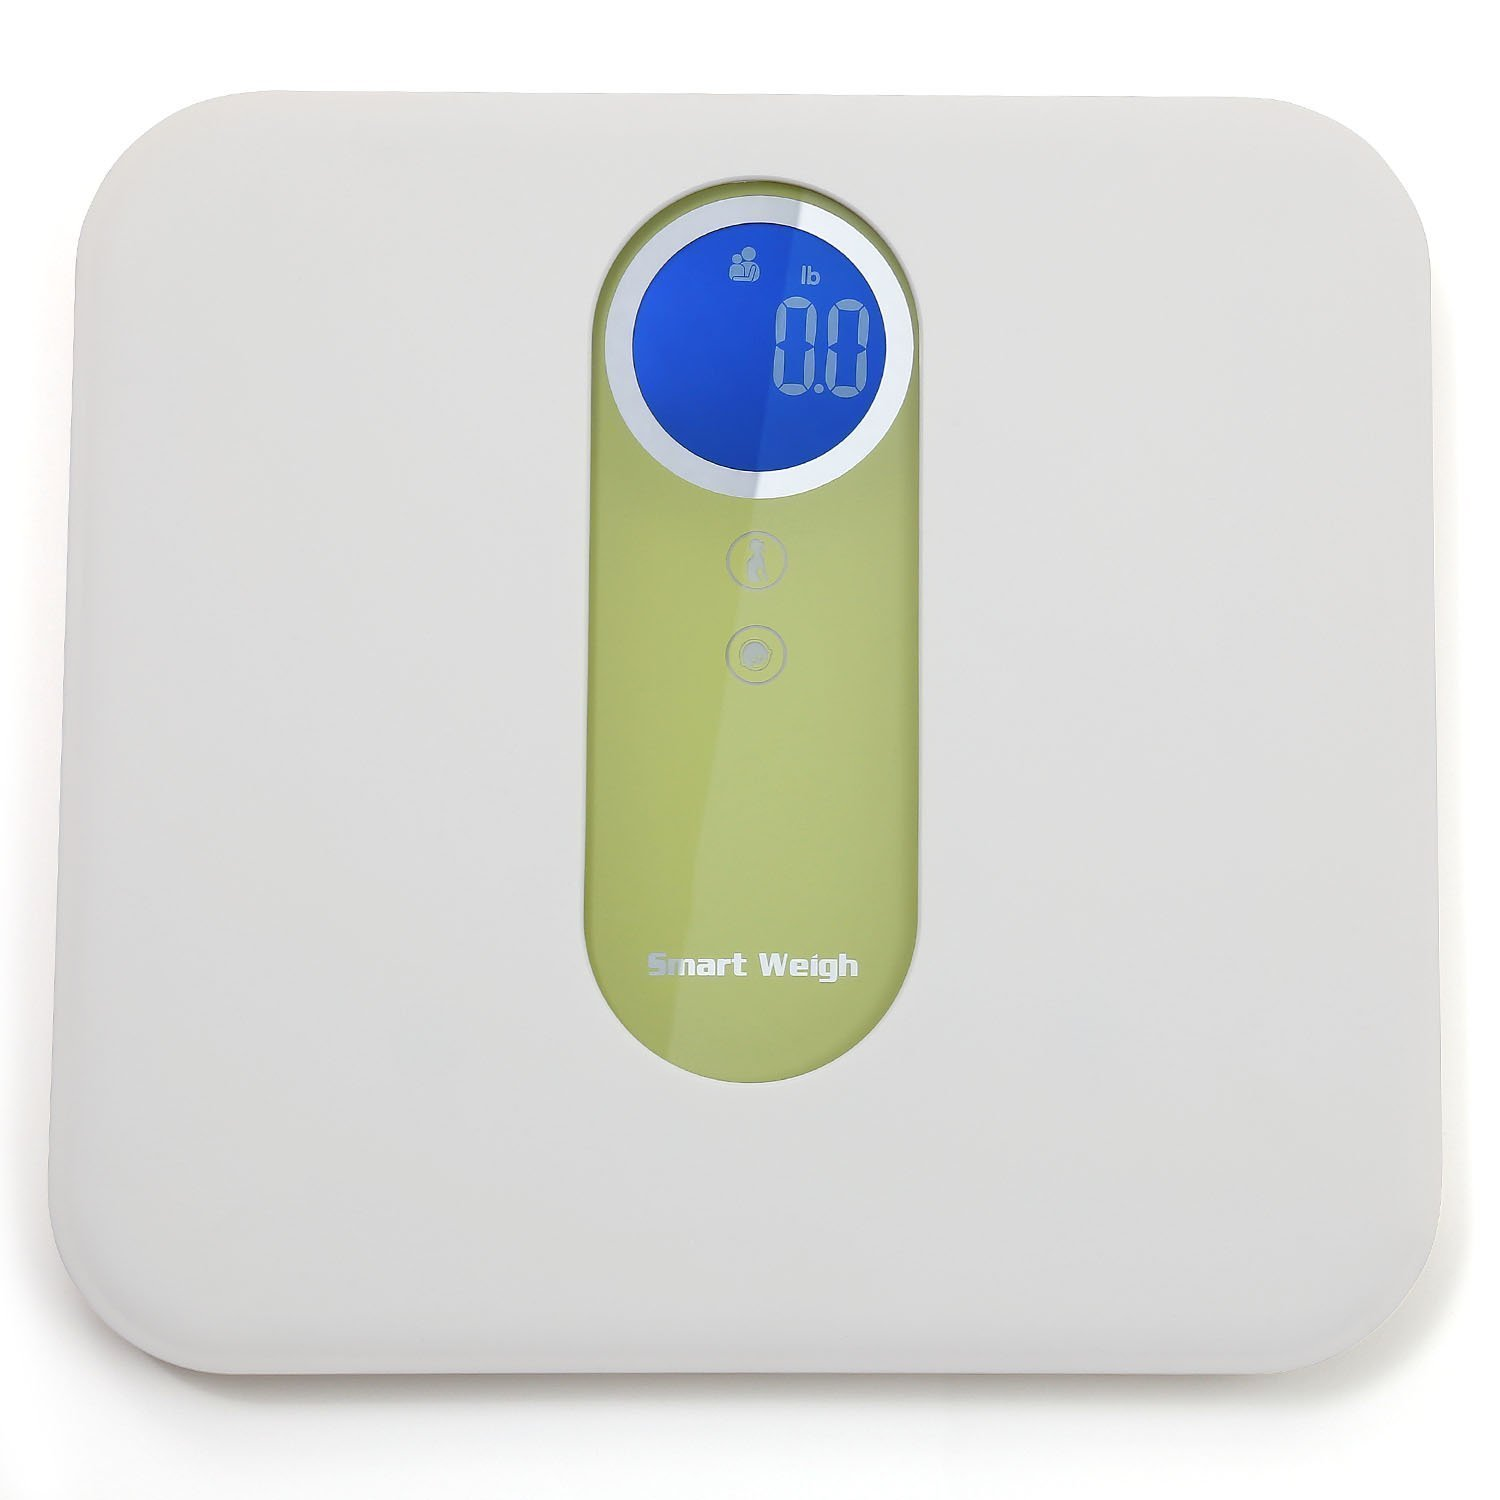 Digital Mother and Baby Bathroom Scale with Ultra Wide Platform, Step-on Technology and LCD Display, 330 lb Capacity Smart Weigh MBS10